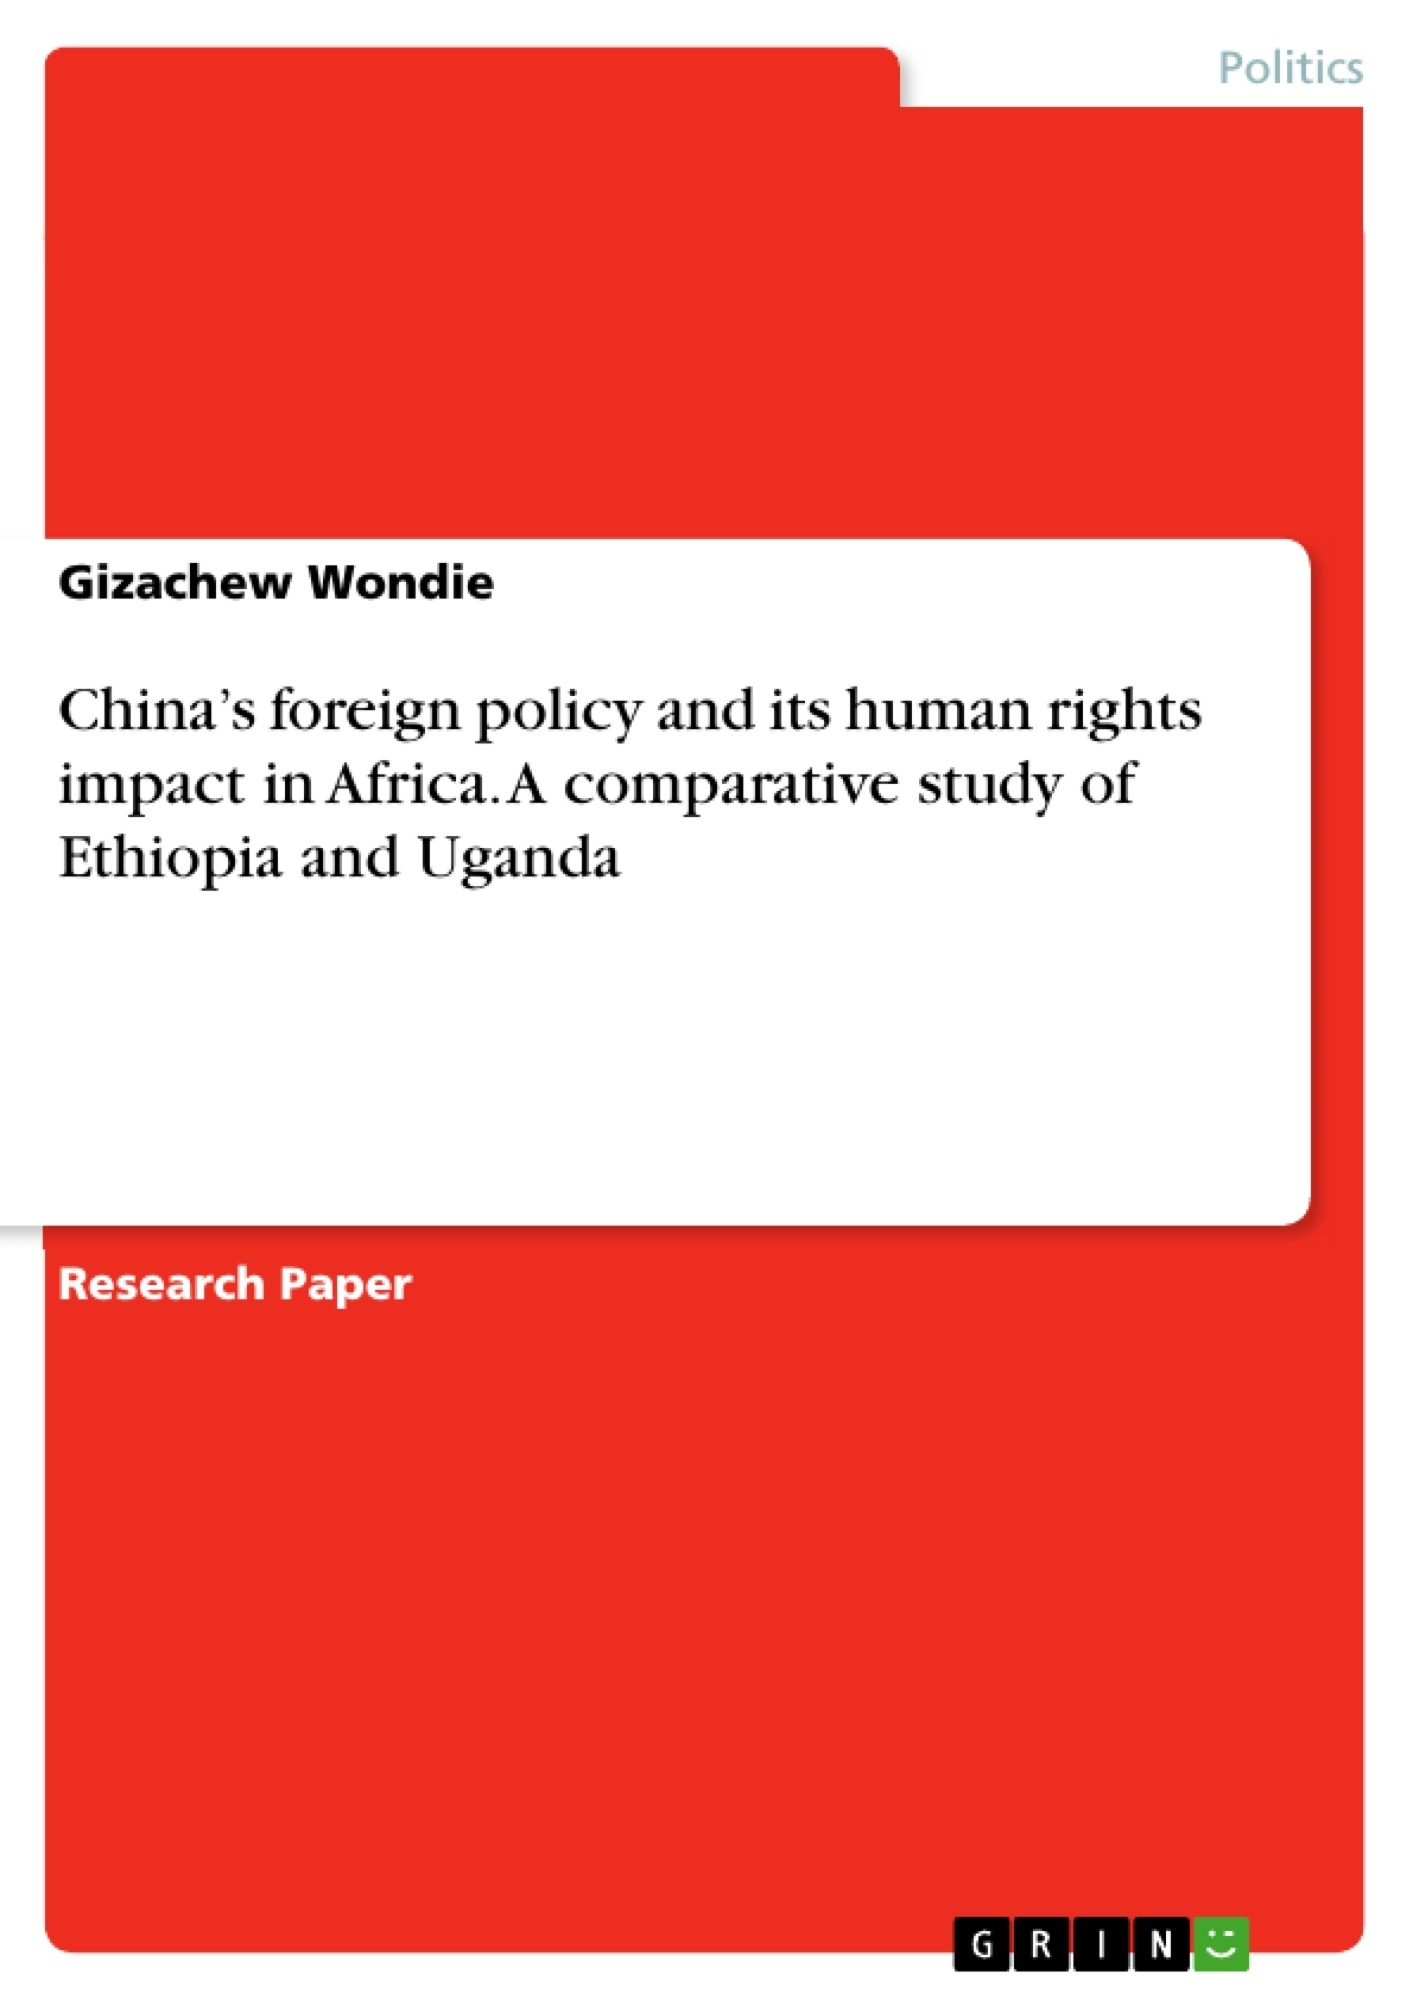 Title: China's foreign policy and its human rights impact in Africa. A comparative study of Ethiopia and Uganda